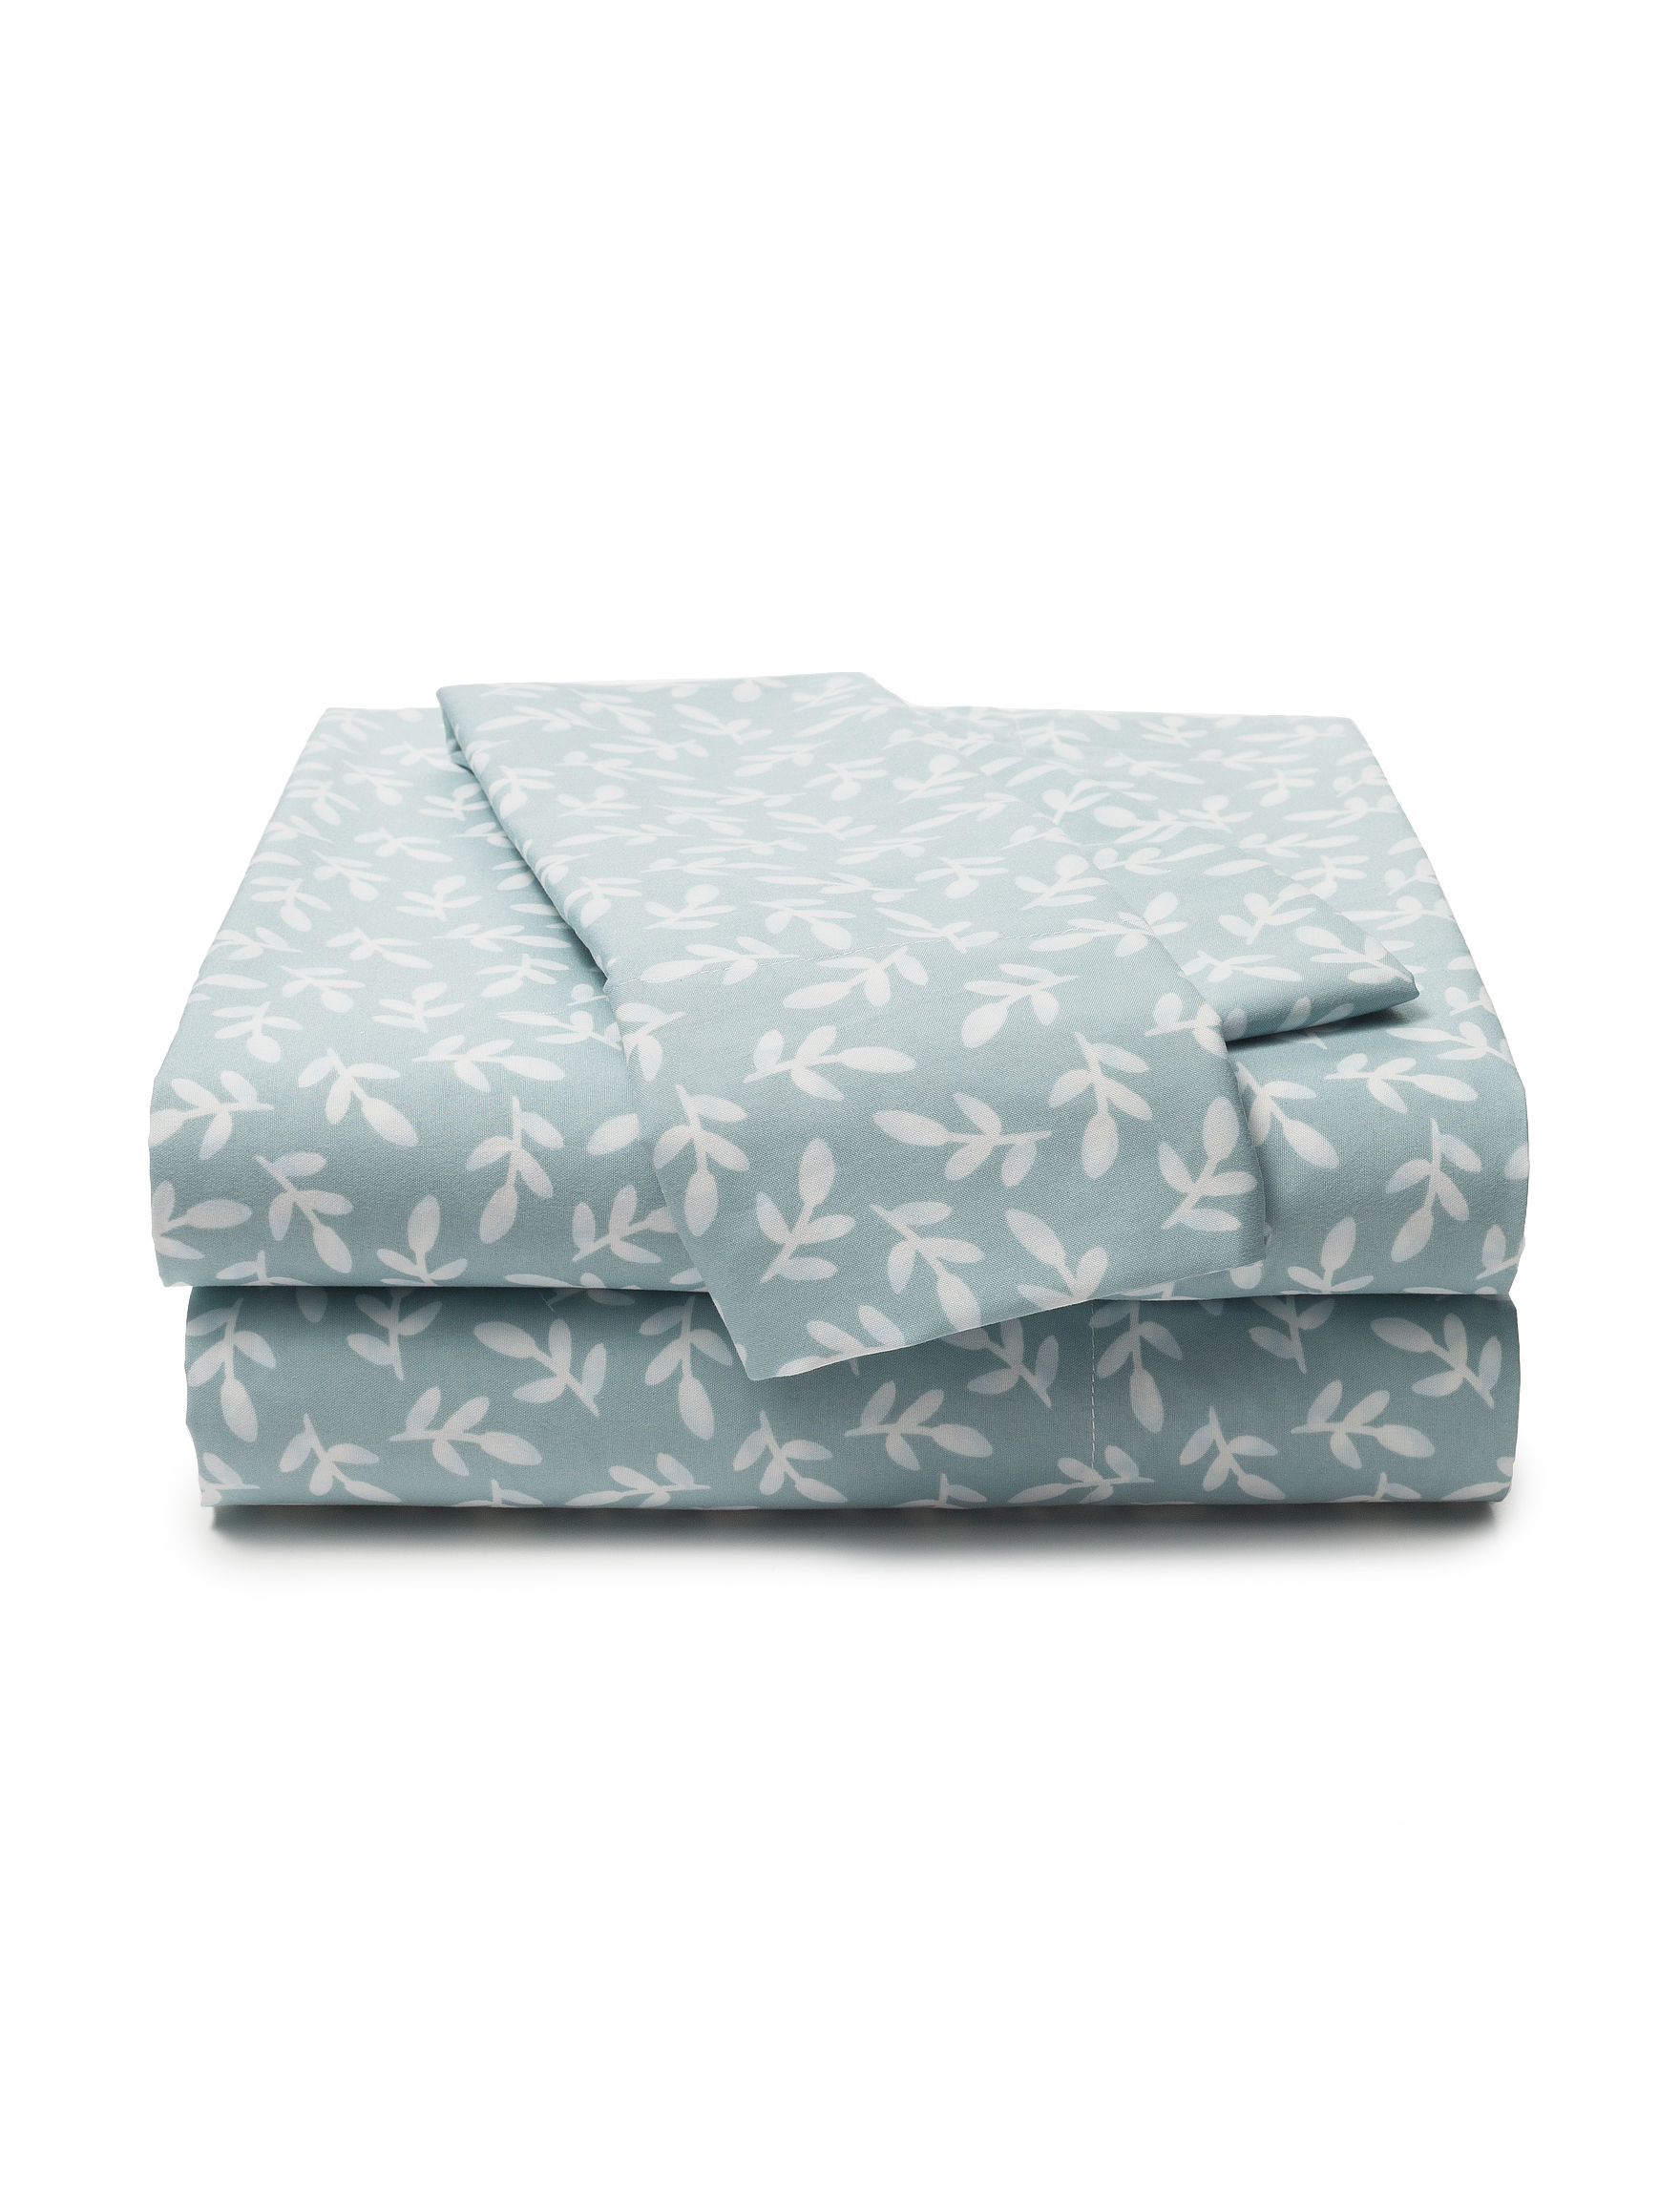 Great Hotels Collection Sea Foam Sheets & Pillowcases